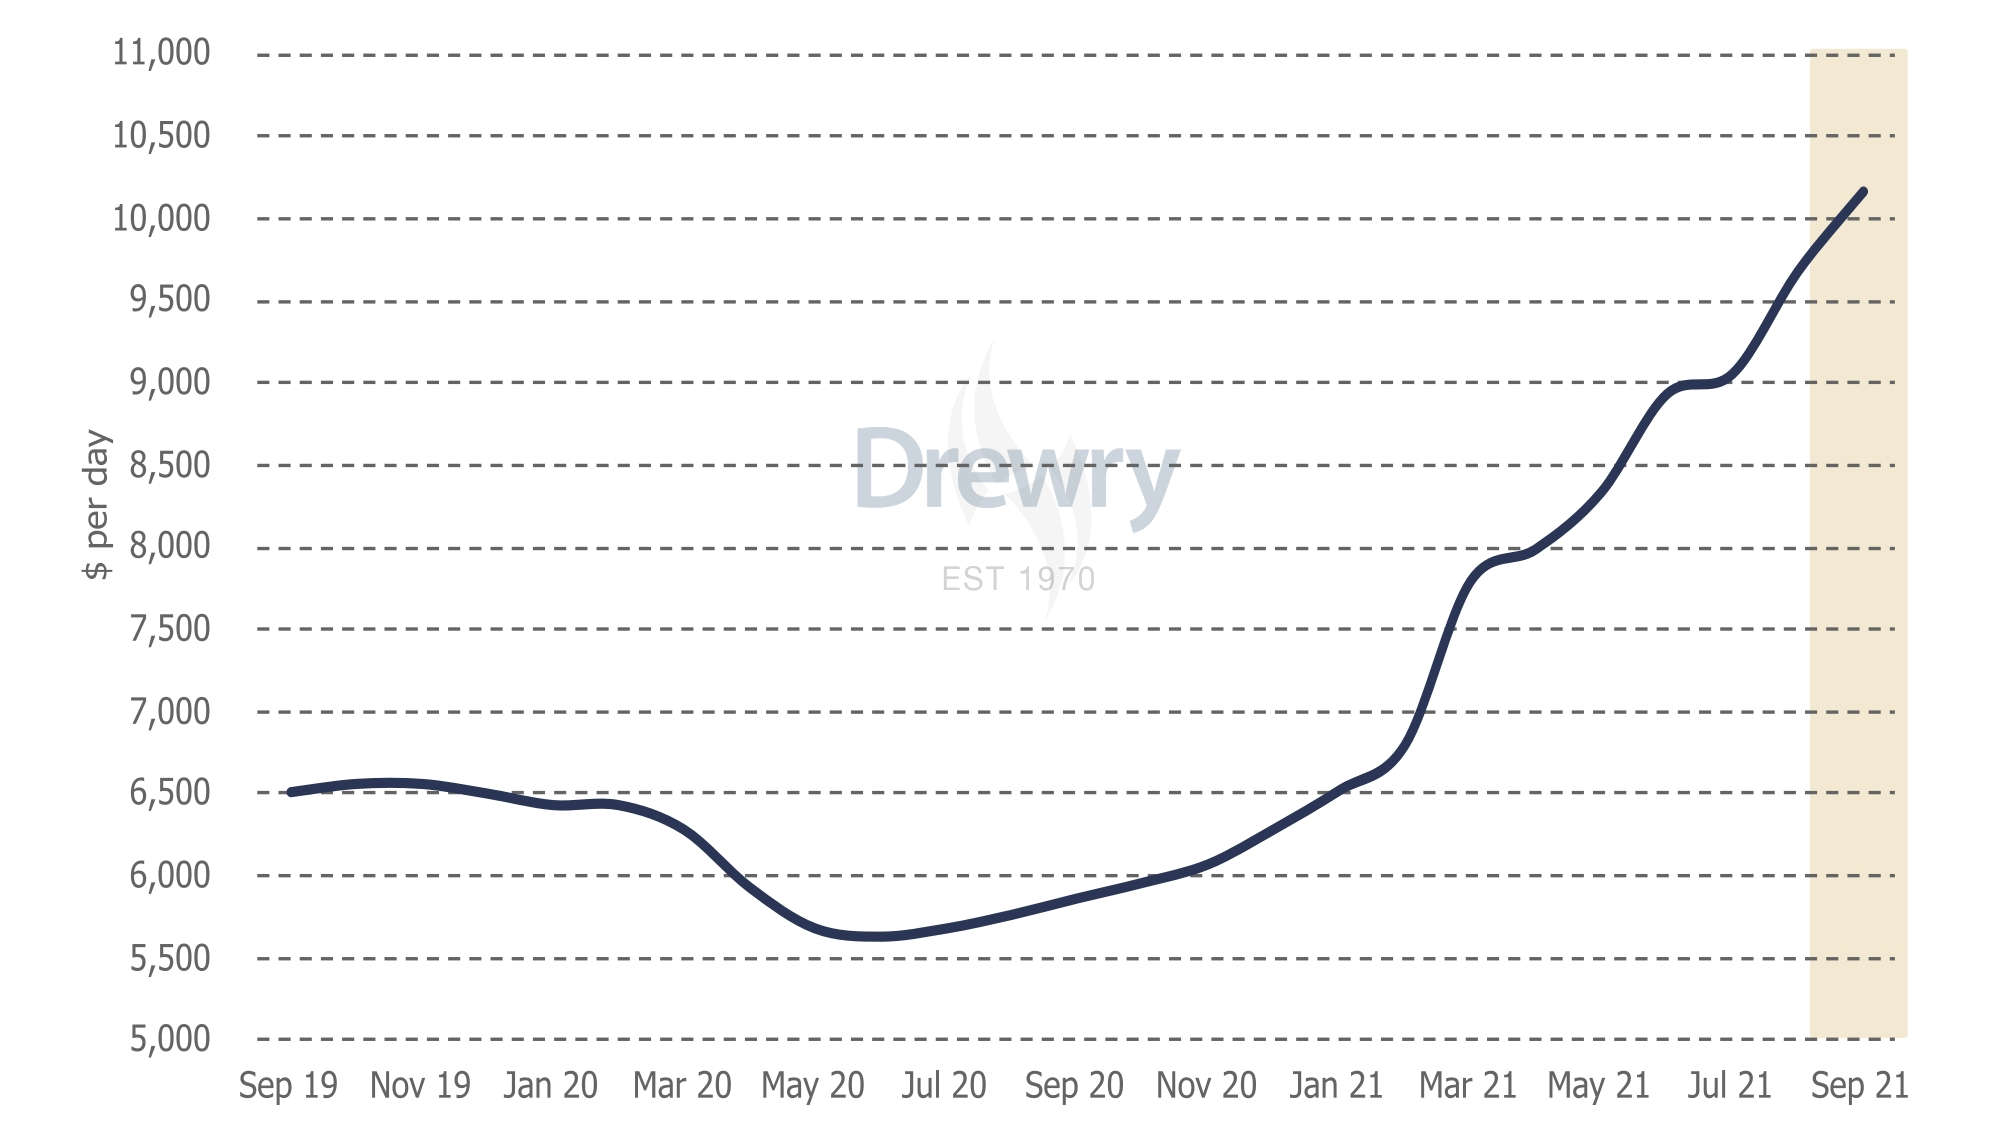 The Drewry Multipurpose Time Charter Index jumped almost 7 percent in August, beating the shipping consultancy's forecast of a slower rise. To remind, the shipping consultancy Drewry expected the index to edge up just over 1 percent from July figures.